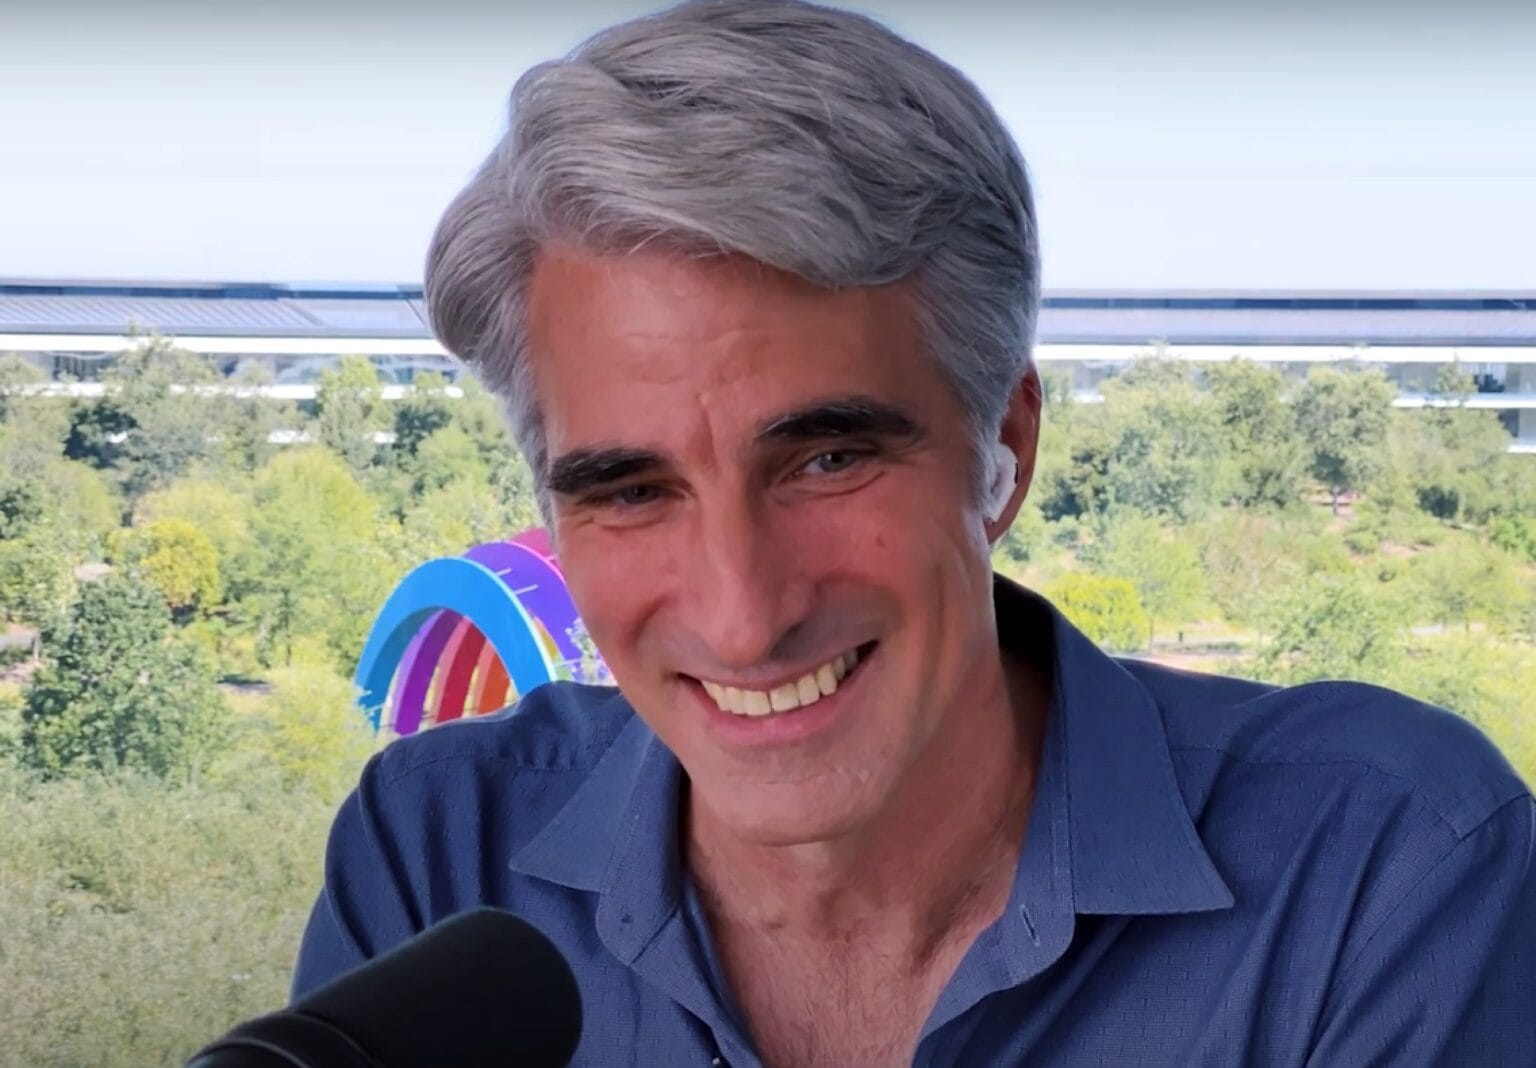 After Monday's successful WWDC keynote, Apple software chief Craig Federighi can breathe a sigh of relief.